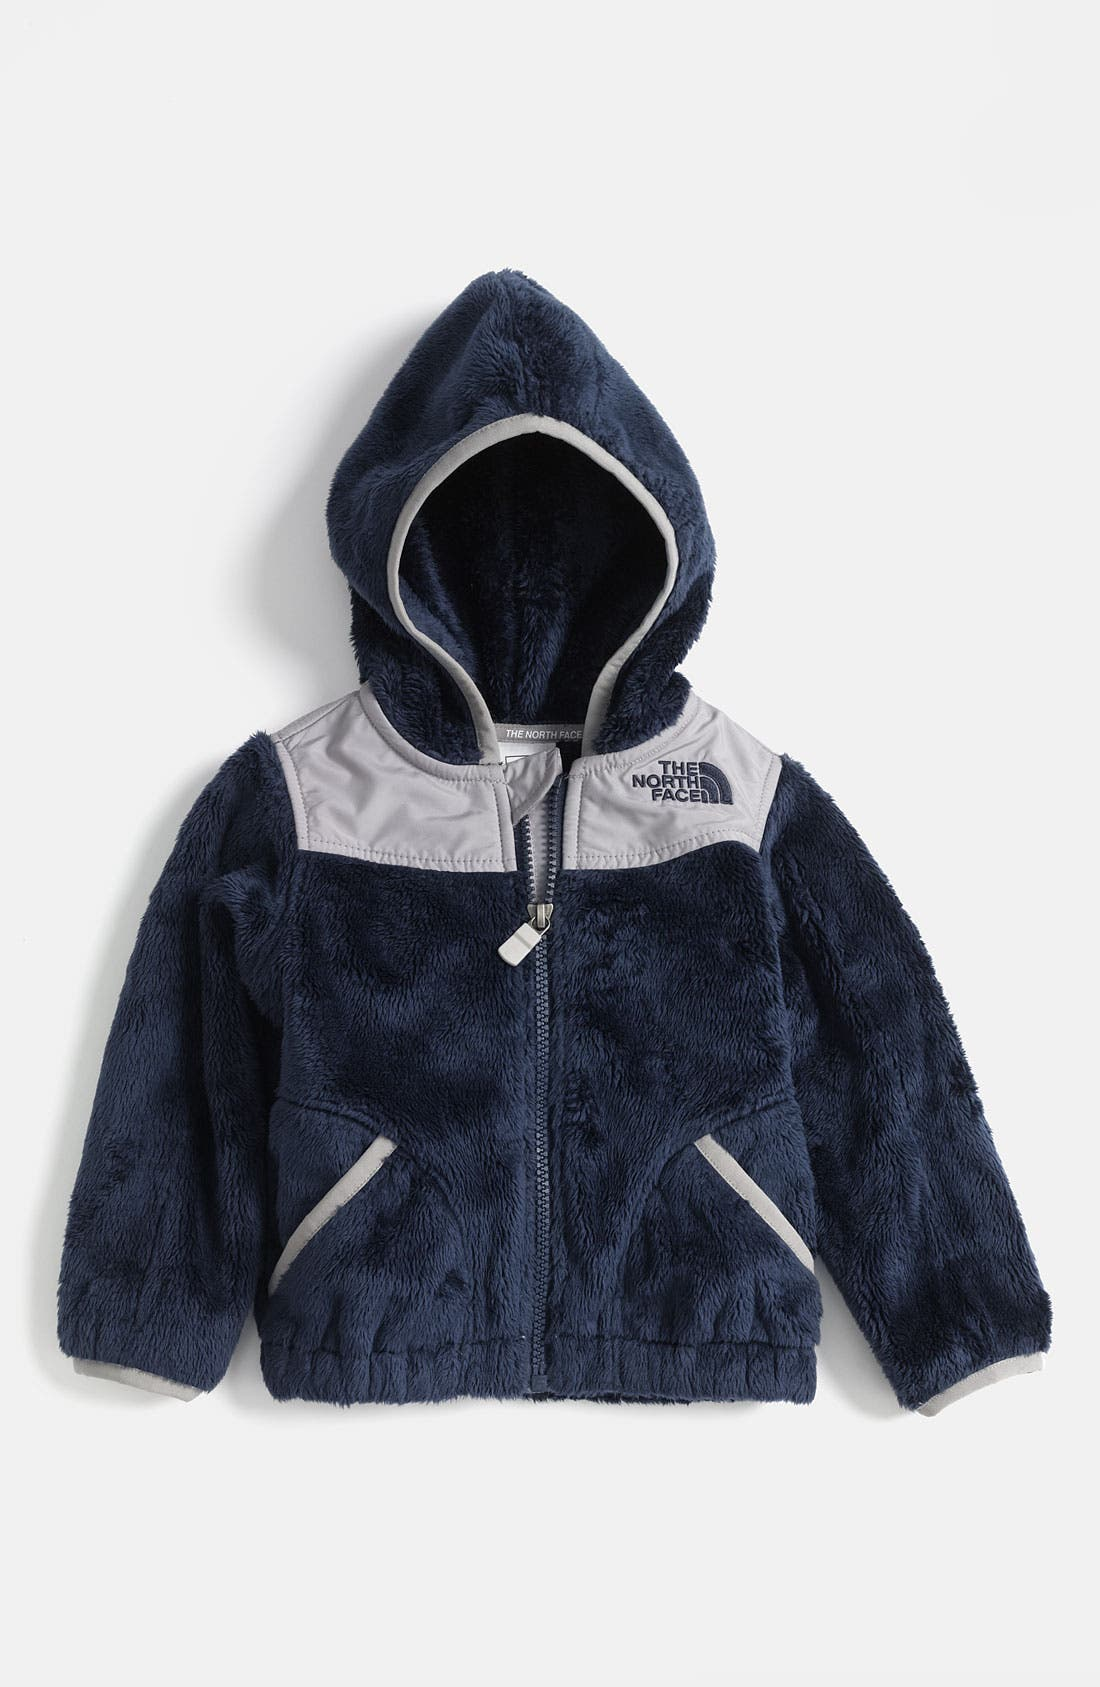 Alternate Image 1 Selected - The North Face 'Oso' Hoodie (Baby Boys) (Nordstrom Exclusive)